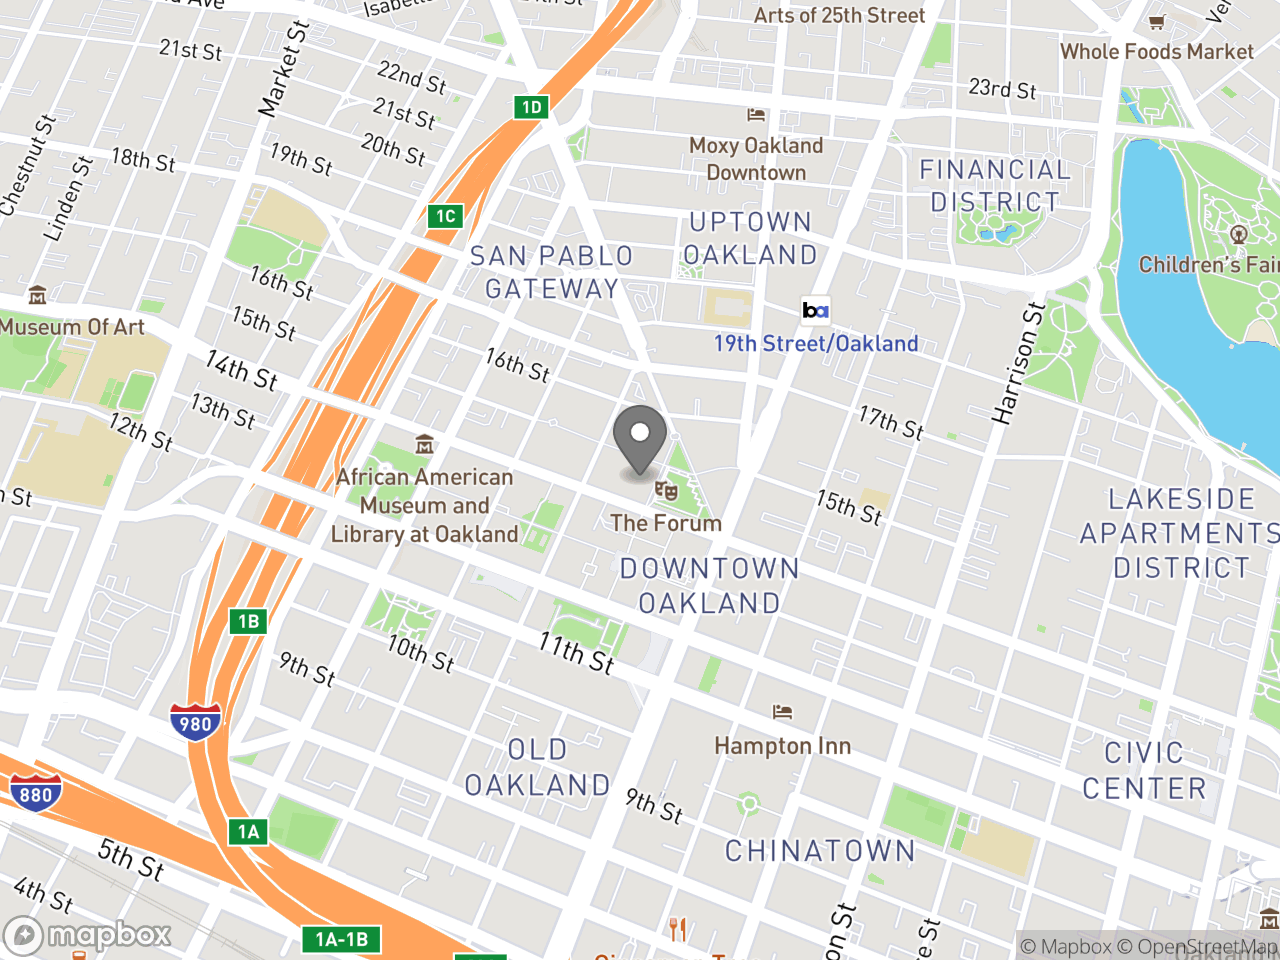 Map image for CANCELLED:  Police Commission Personnel Committee June 27, 2019, located at 1 Frank H. Ogawa Plaza in Oakland, CA 94612